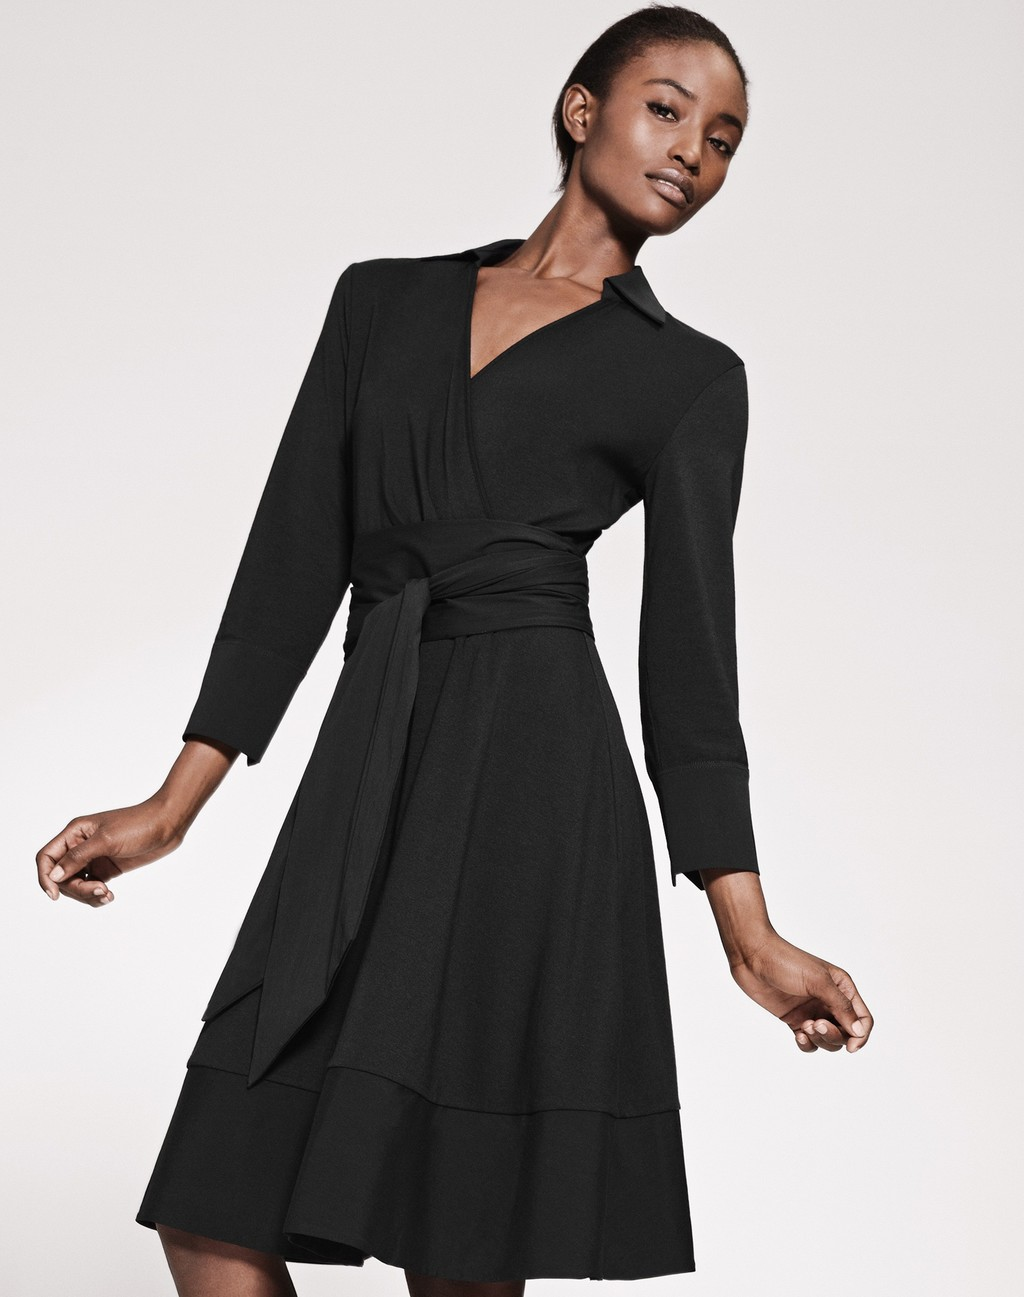 All Day Dress Black - style: faux wrap/wrap; neckline: v-neck; fit: tailored/fitted; pattern: plain; waist detail: belted waist/tie at waist/drawstring; predominant colour: black; occasions: work, occasion; length: on the knee; fibres: cotton - stretch; hip detail: soft pleats at hip/draping at hip/flared at hip; sleeve length: 3/4 length; sleeve style: standard; pattern type: fabric; texture group: jersey - stretchy/drapey; season: s/s 2016